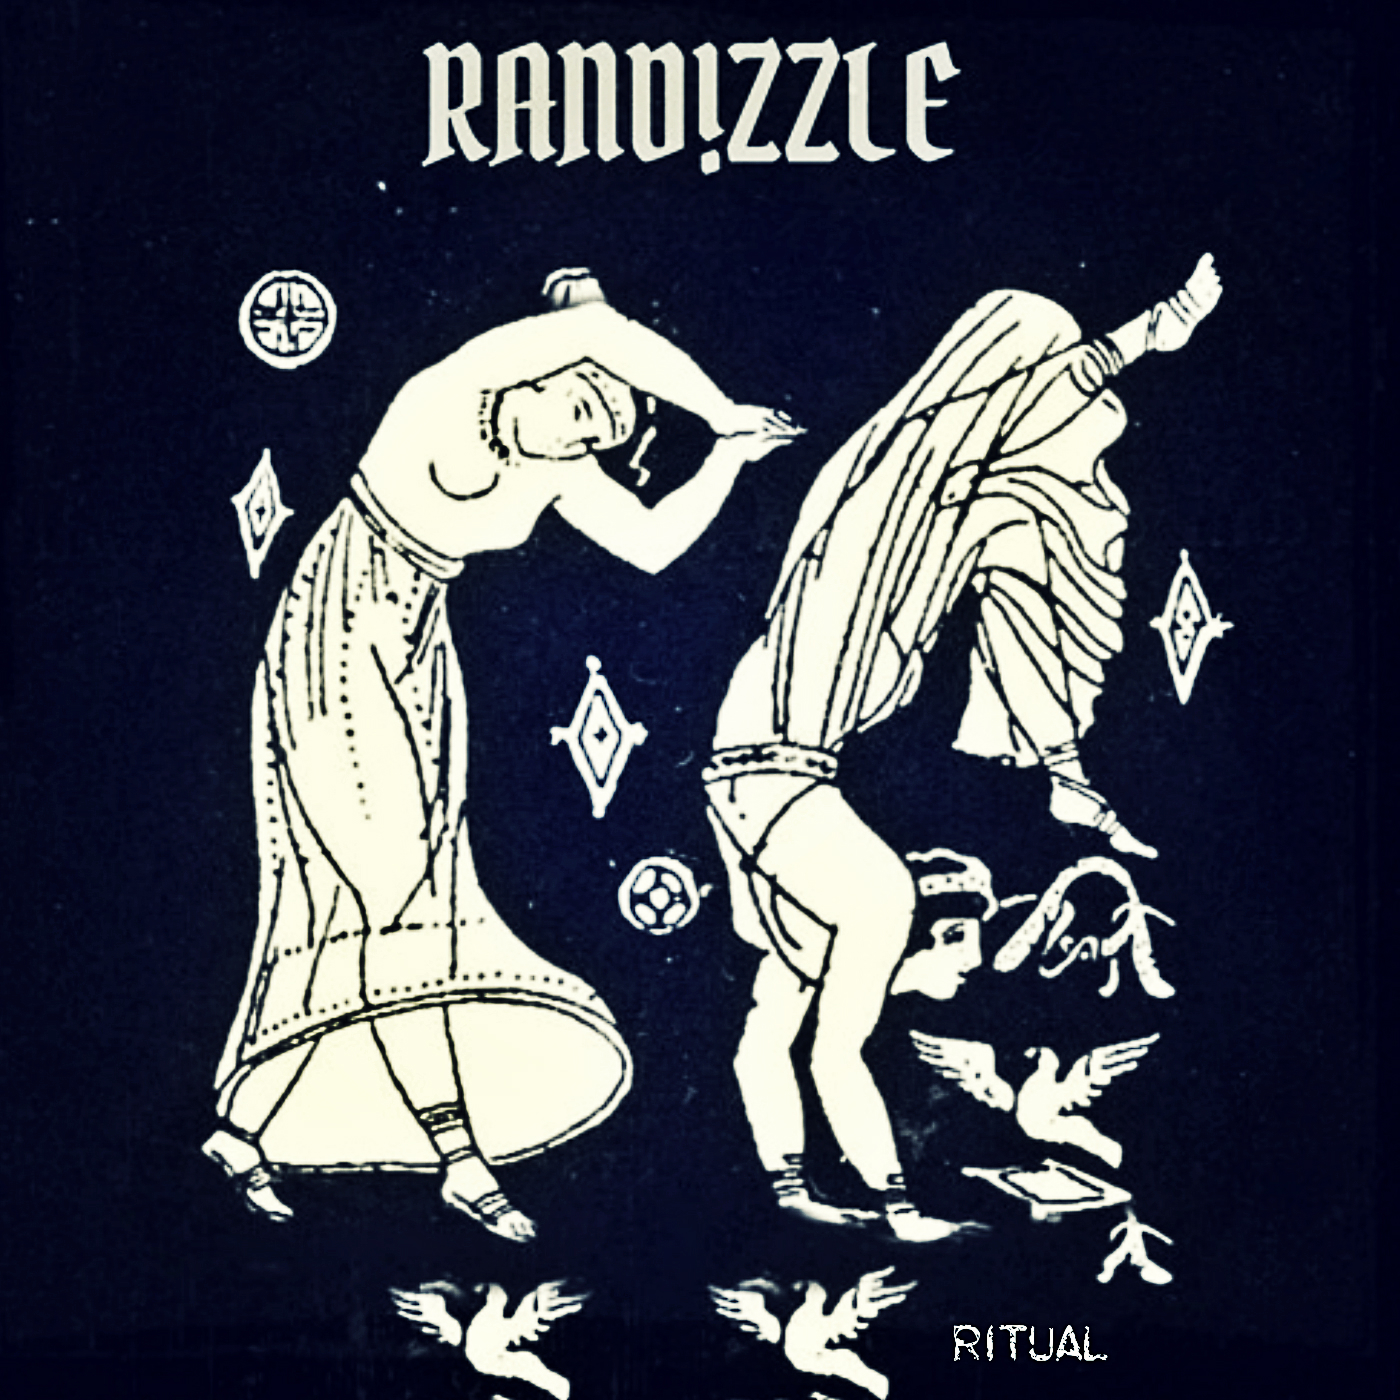 Los Angeles multitalented producer, Randizzle, unveils his latest track Ritual. A perfect blend of Bass music with West Indian influences. 